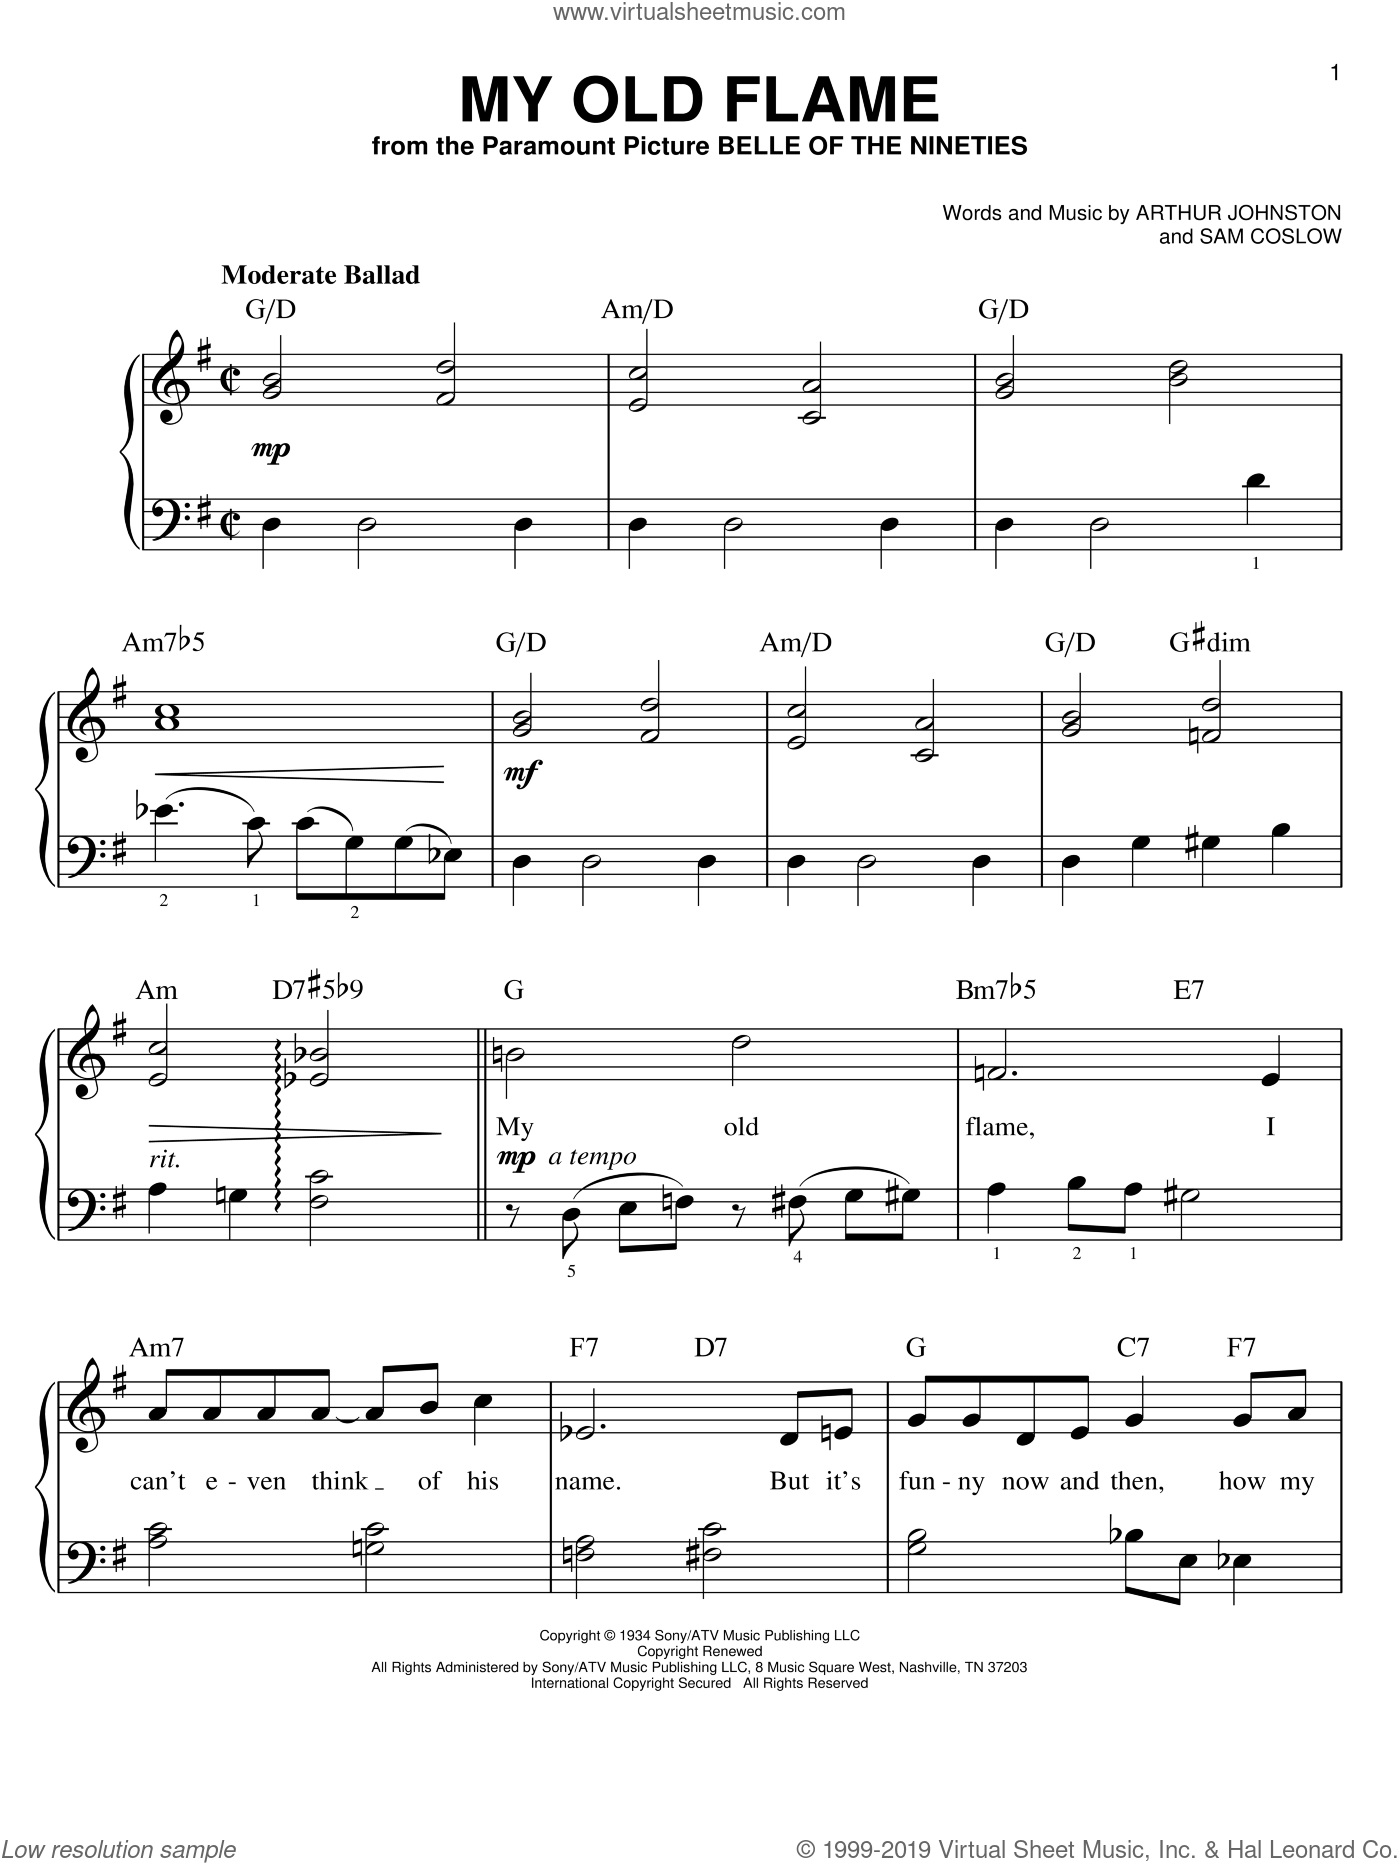 My Old Flame sheet music for piano solo by Sam Coslow, Peggy Lee and Arthur Johnston